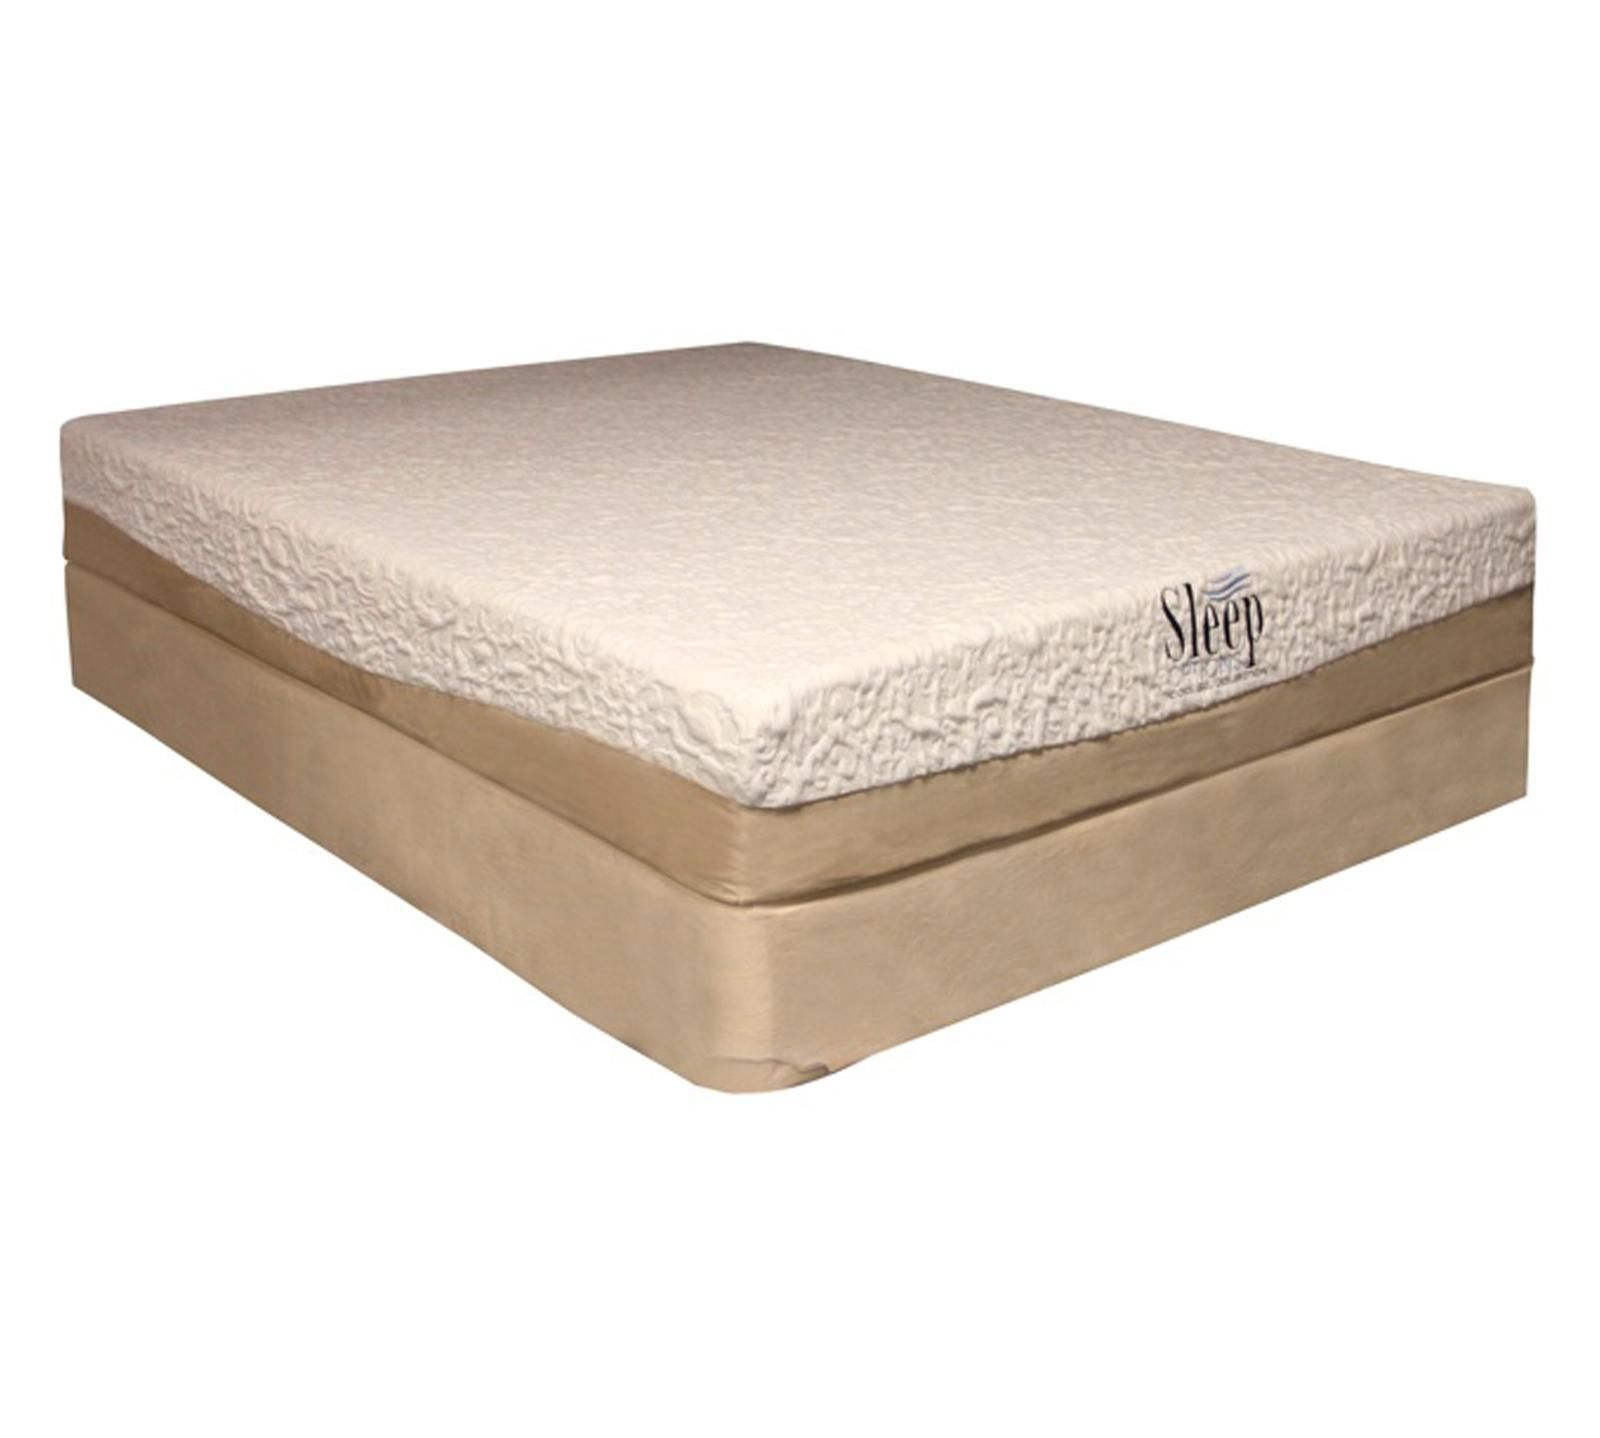 Not Only Is This Firm Mattress Made Of Gel Infused Memory Foam But It Also